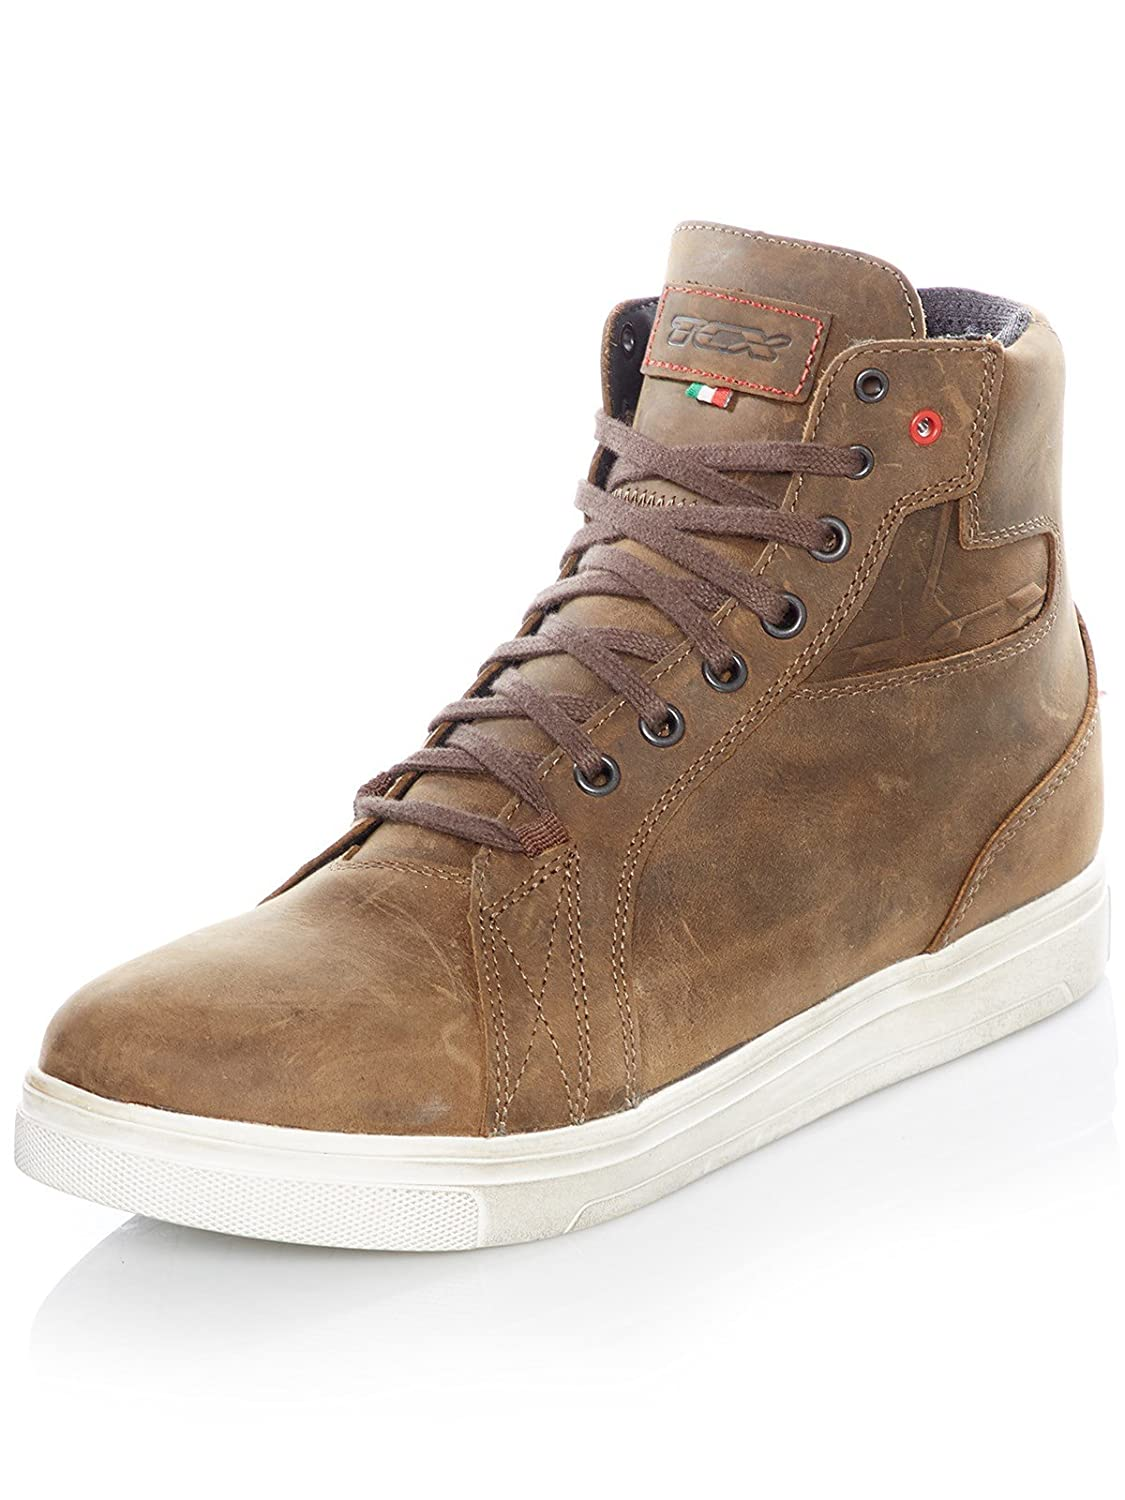 42 COFEE Brown TCX Motorcycle Boots Street ACE WP COFEE Brown